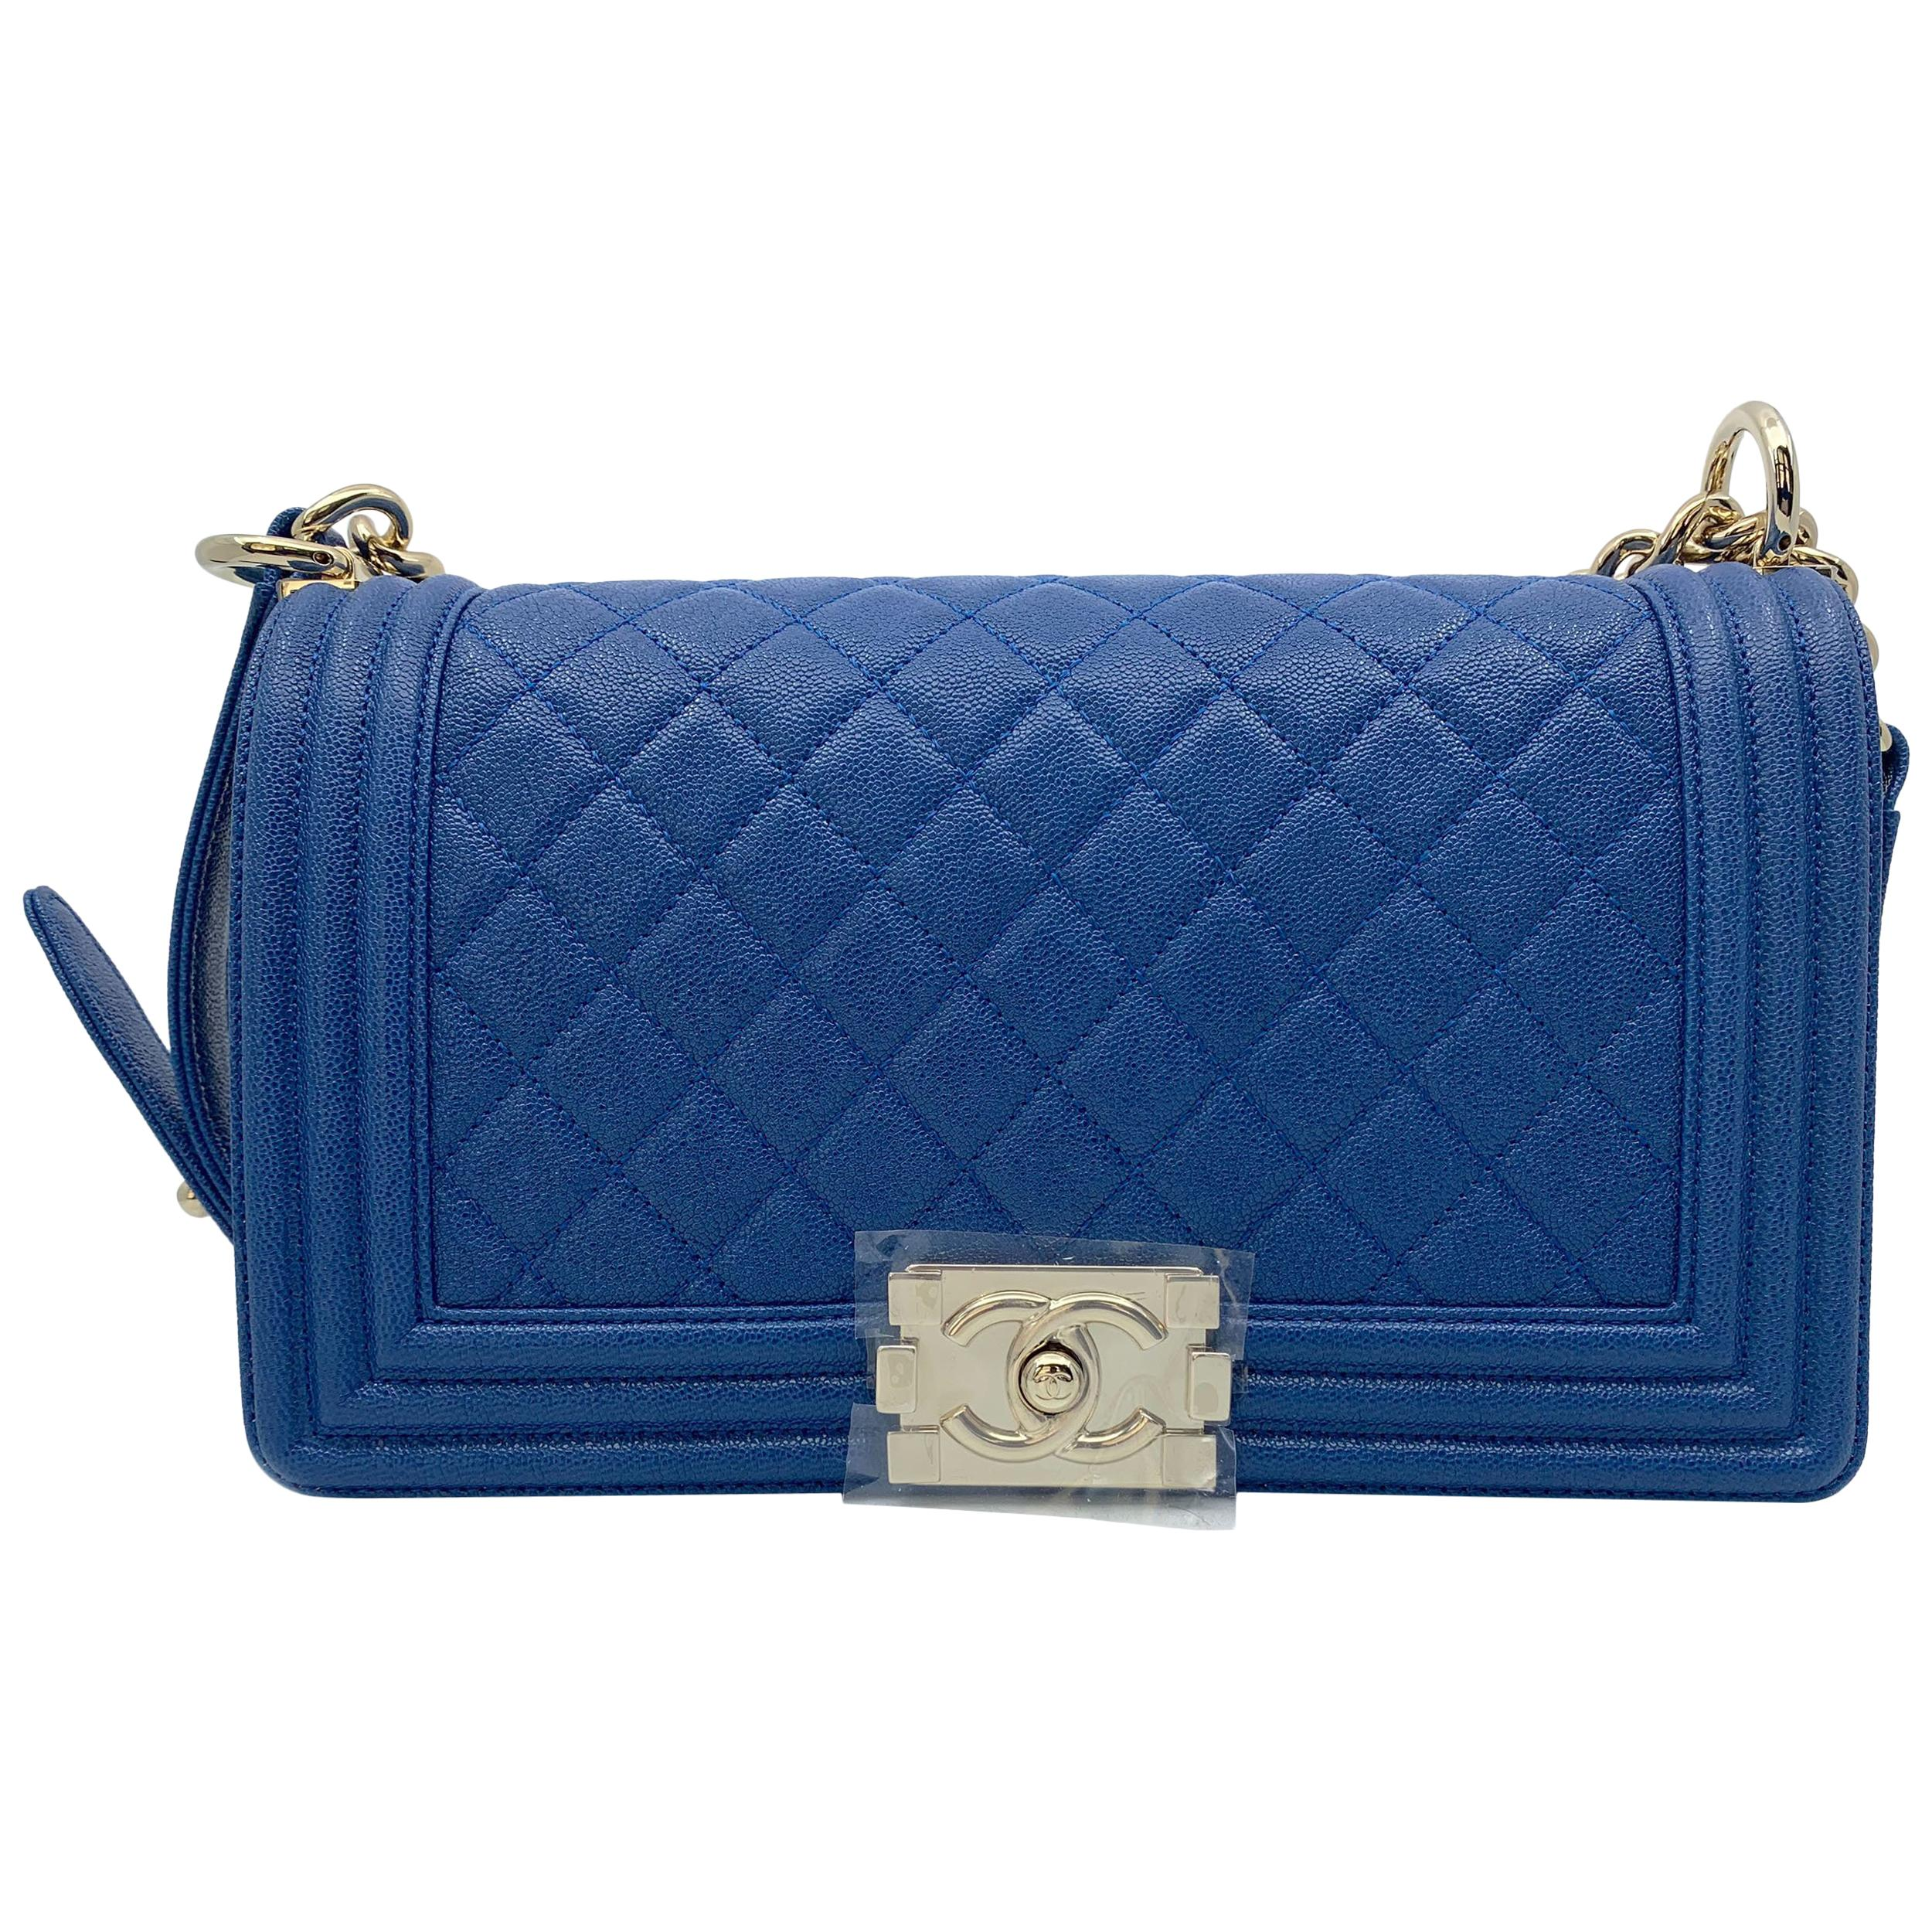 8ac2f4cb5953 Chanel Boy Gold Tone Chain leather Blue Shoulder Ladies Bag For Sale at  1stdibs